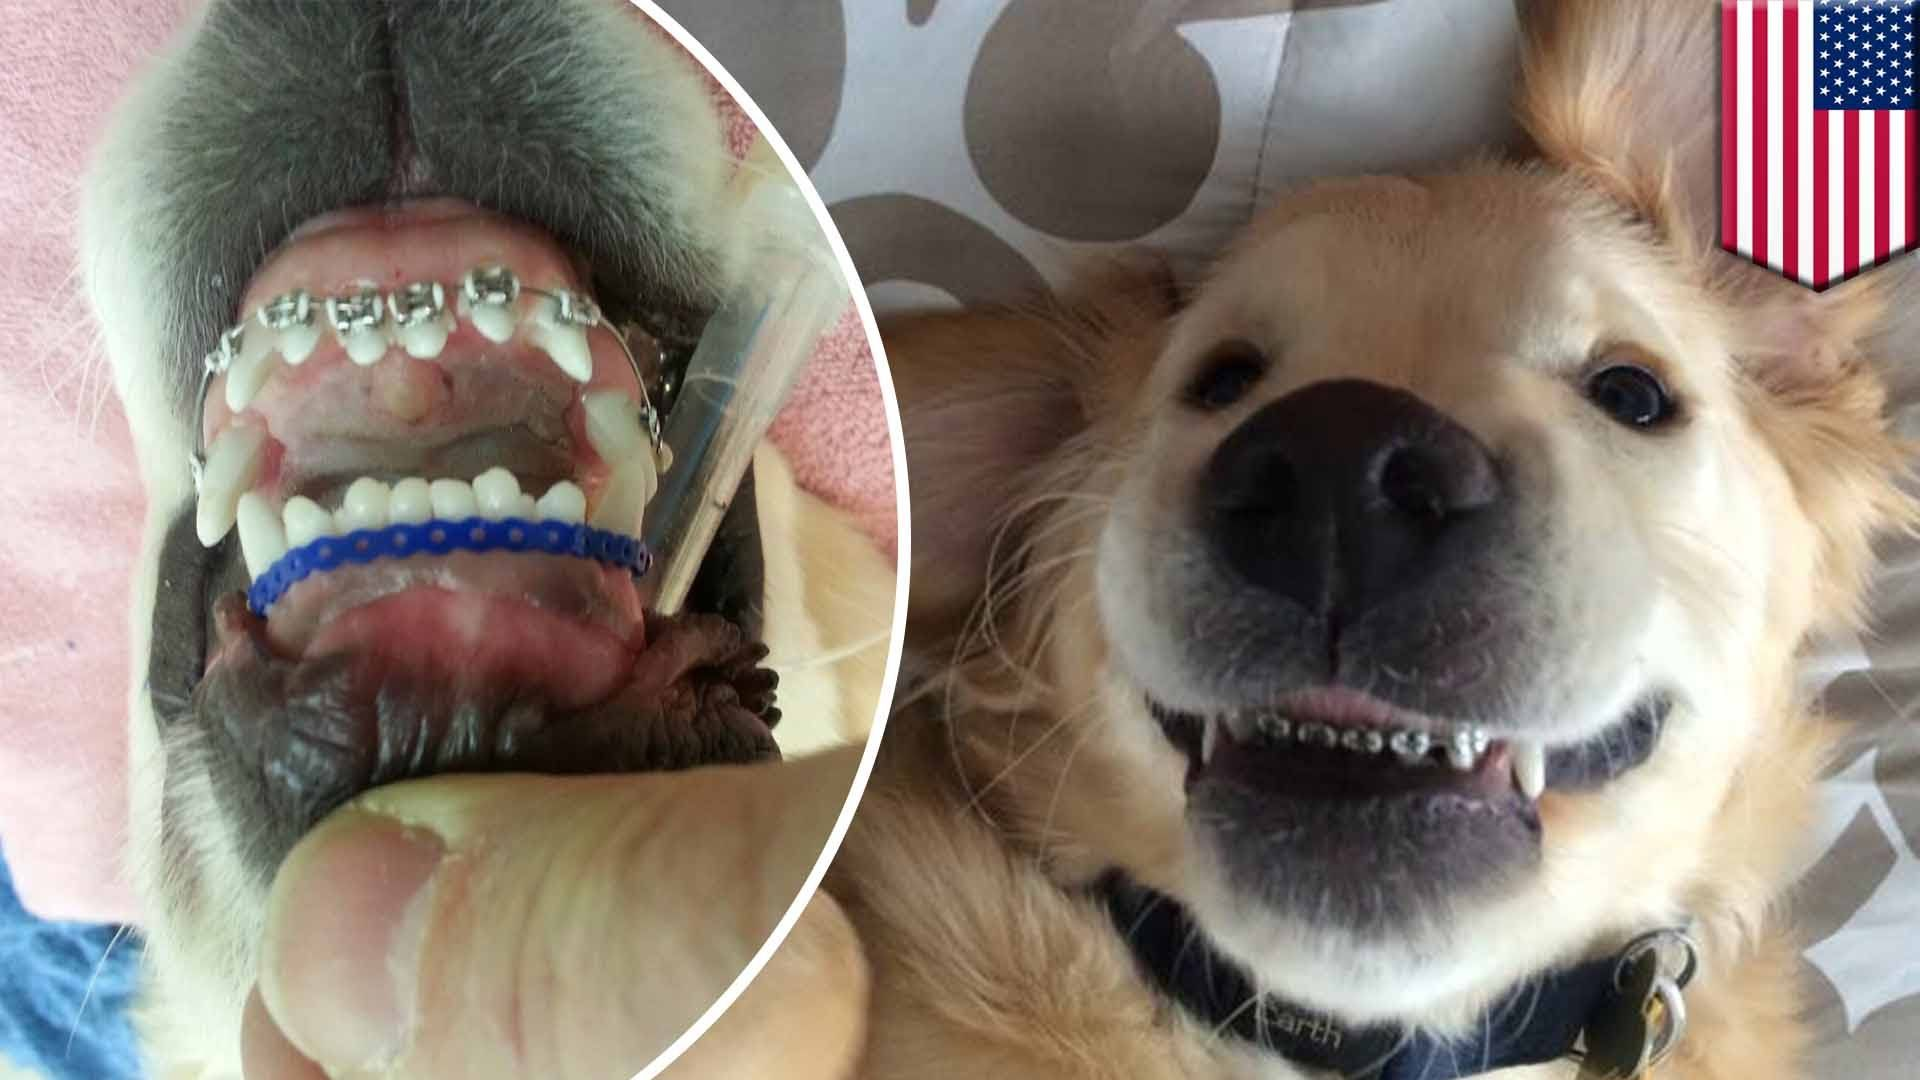 Dog Wearing Braces After Being Diagnosed With Malocclusion Photos